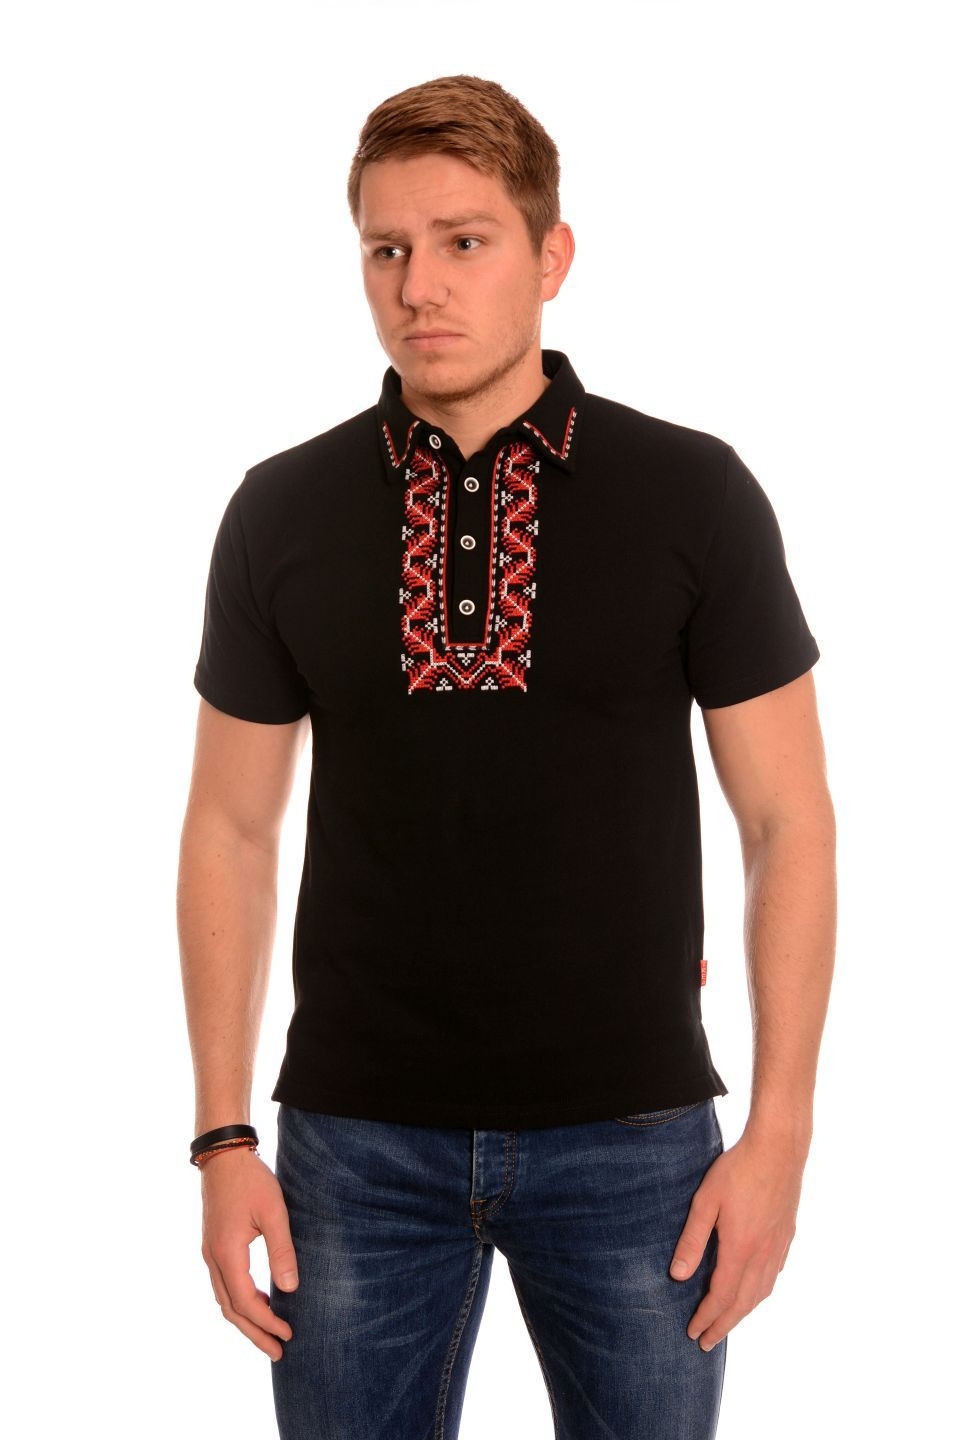 Black men's t-shirt with embroidery.